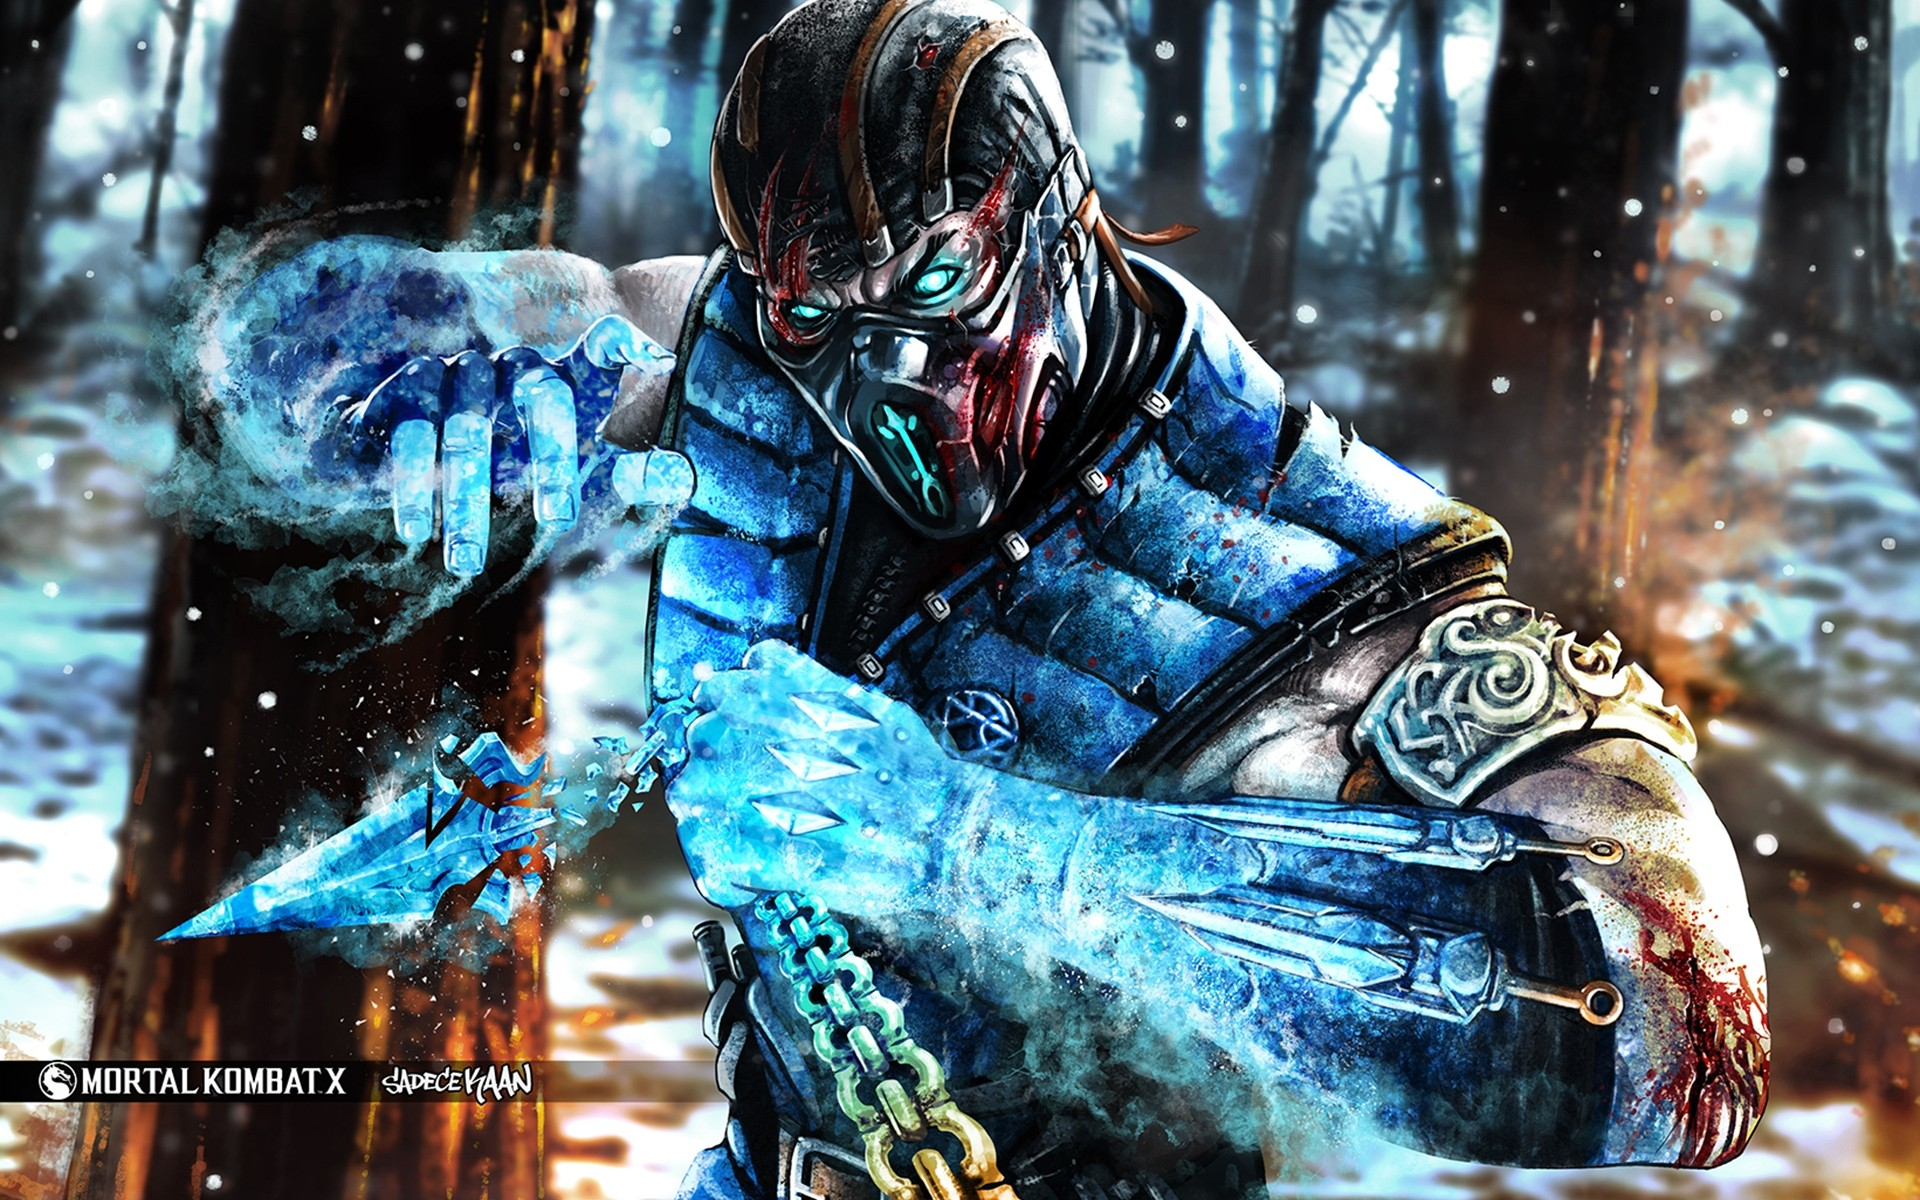 Mortal Kombat X Subzero Iphone Wallpapers For Free